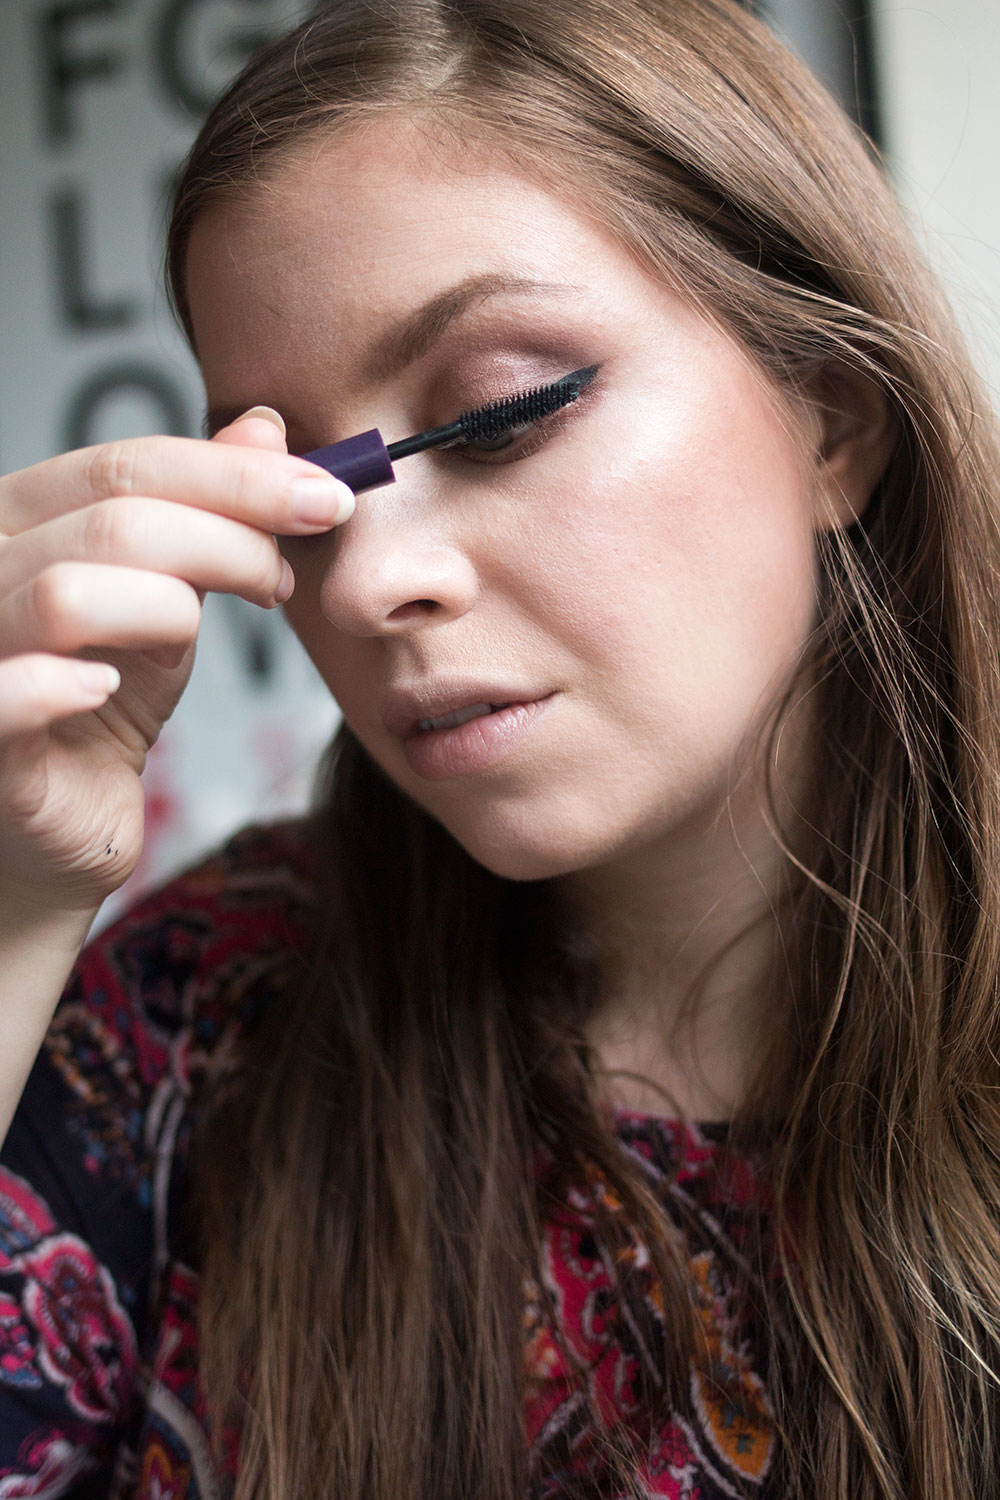 Tarte Lights Camera Lashes Mascara Review // Hello Rigby Seattle Beauty Blog